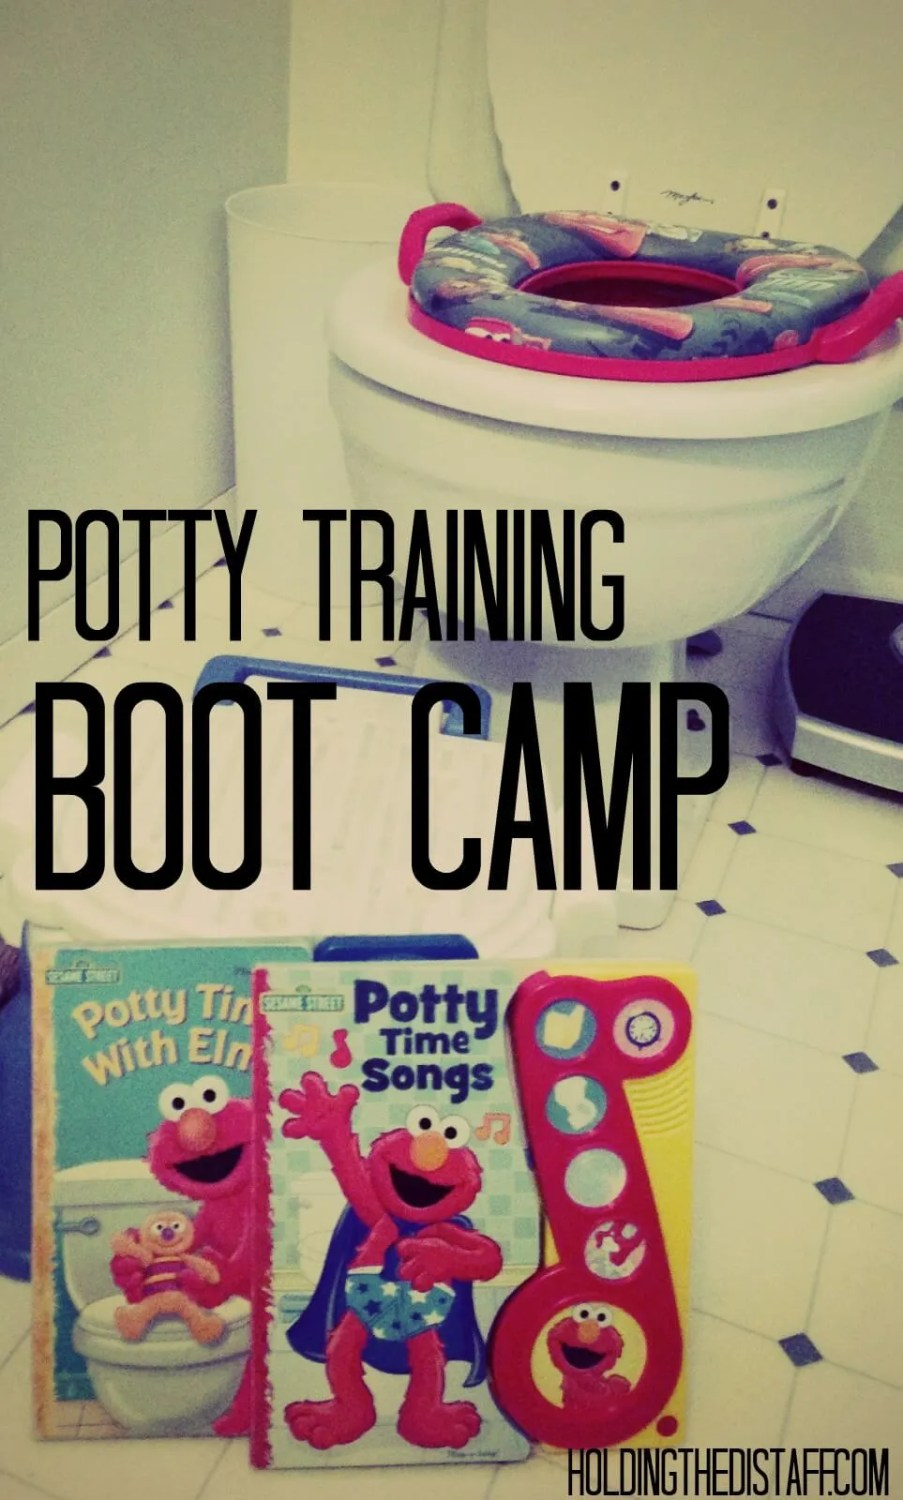 Potty Training Boot Camp: How to kickstart potty training with a toddler. Most of the hard work is completed in just in ONE DAY.